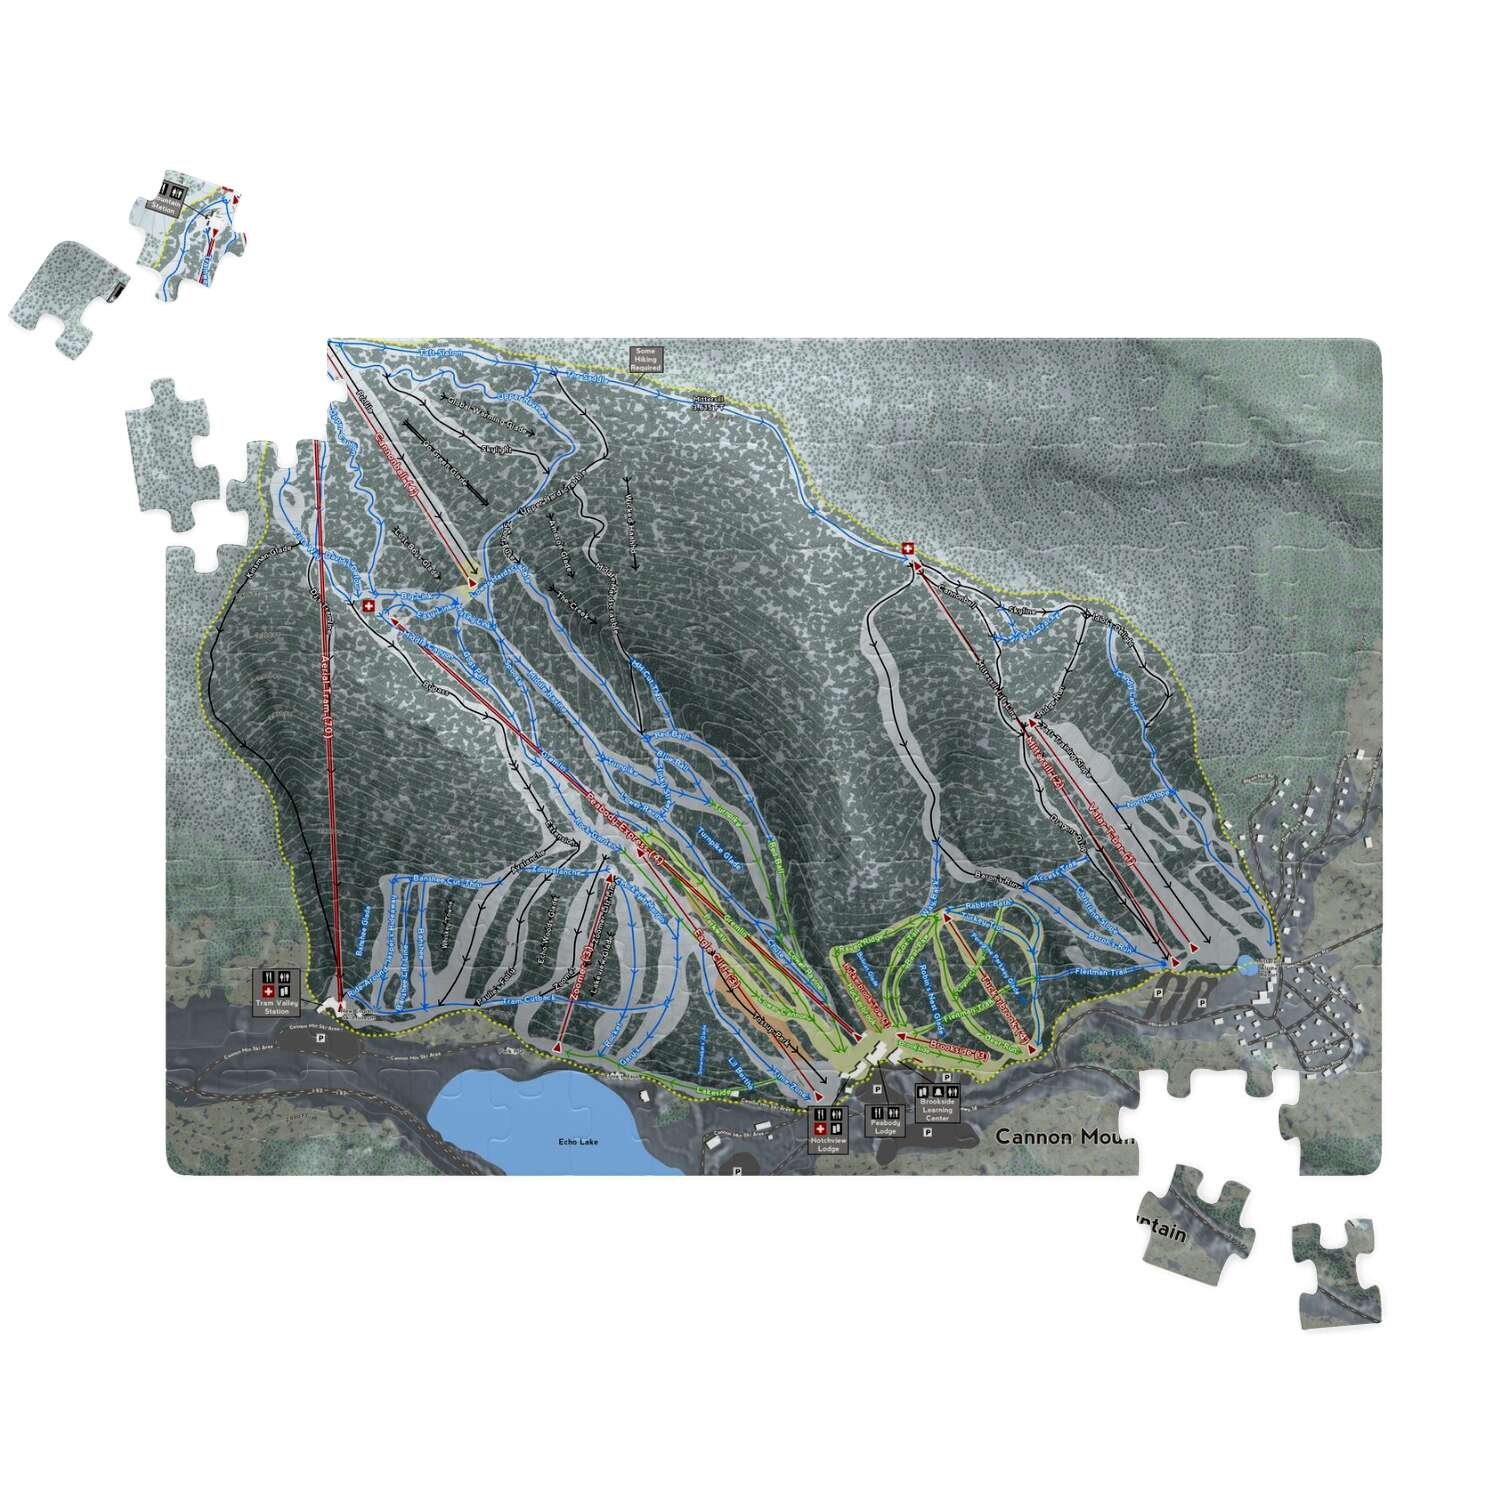 Cannon Mountain New Hampshire Ski Resort Map Puzzles